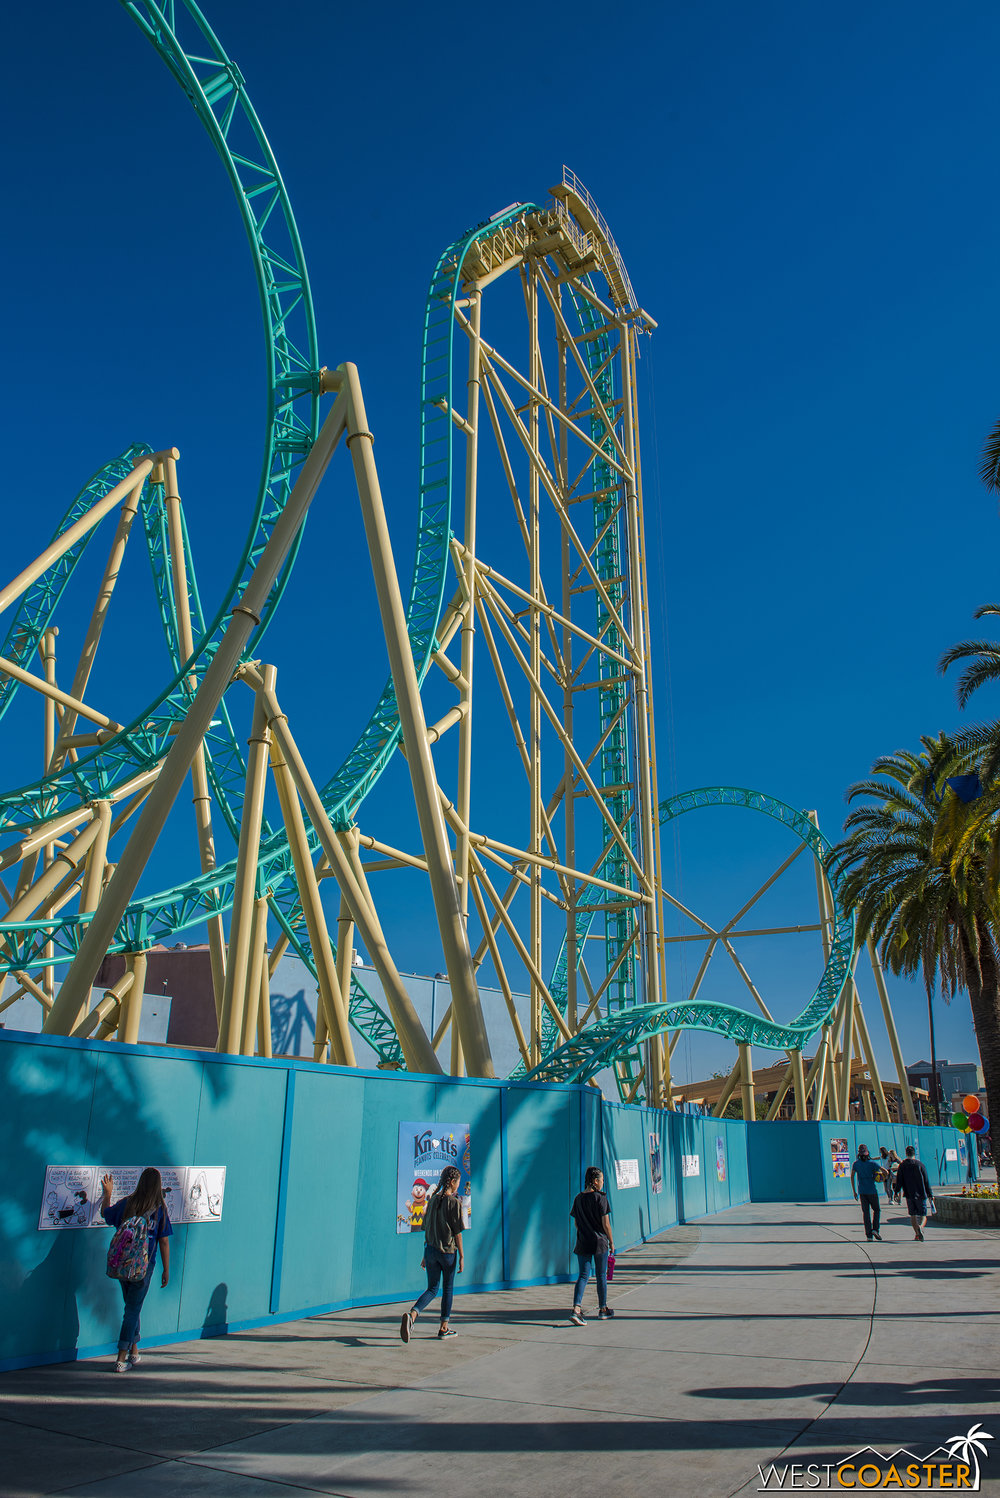 And HangTime is a lot taller too!